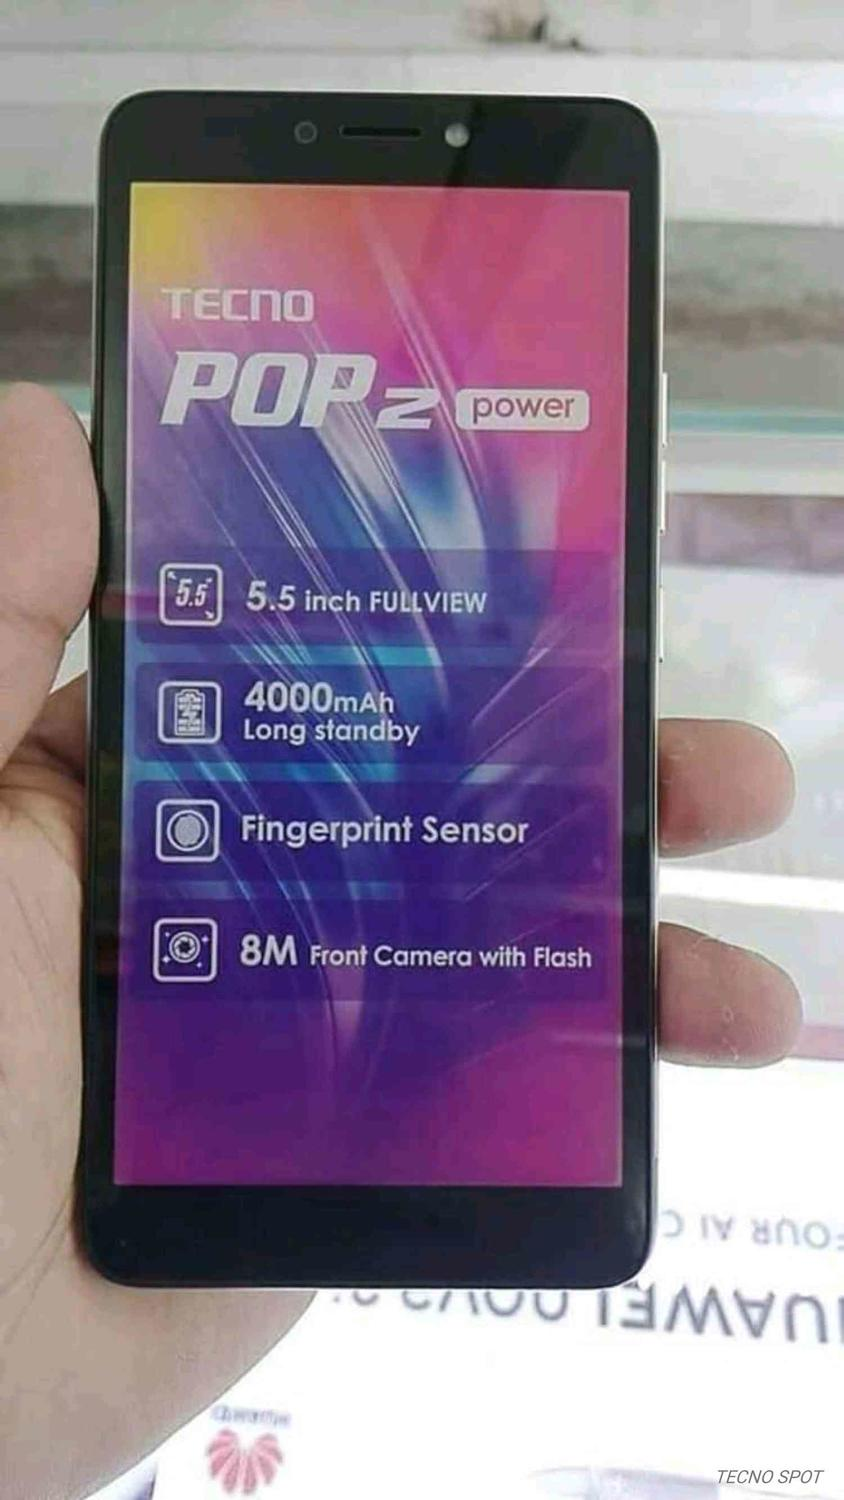 Tecno pop 2 Power The Power House - TECNO MOBILE COMMUNITY